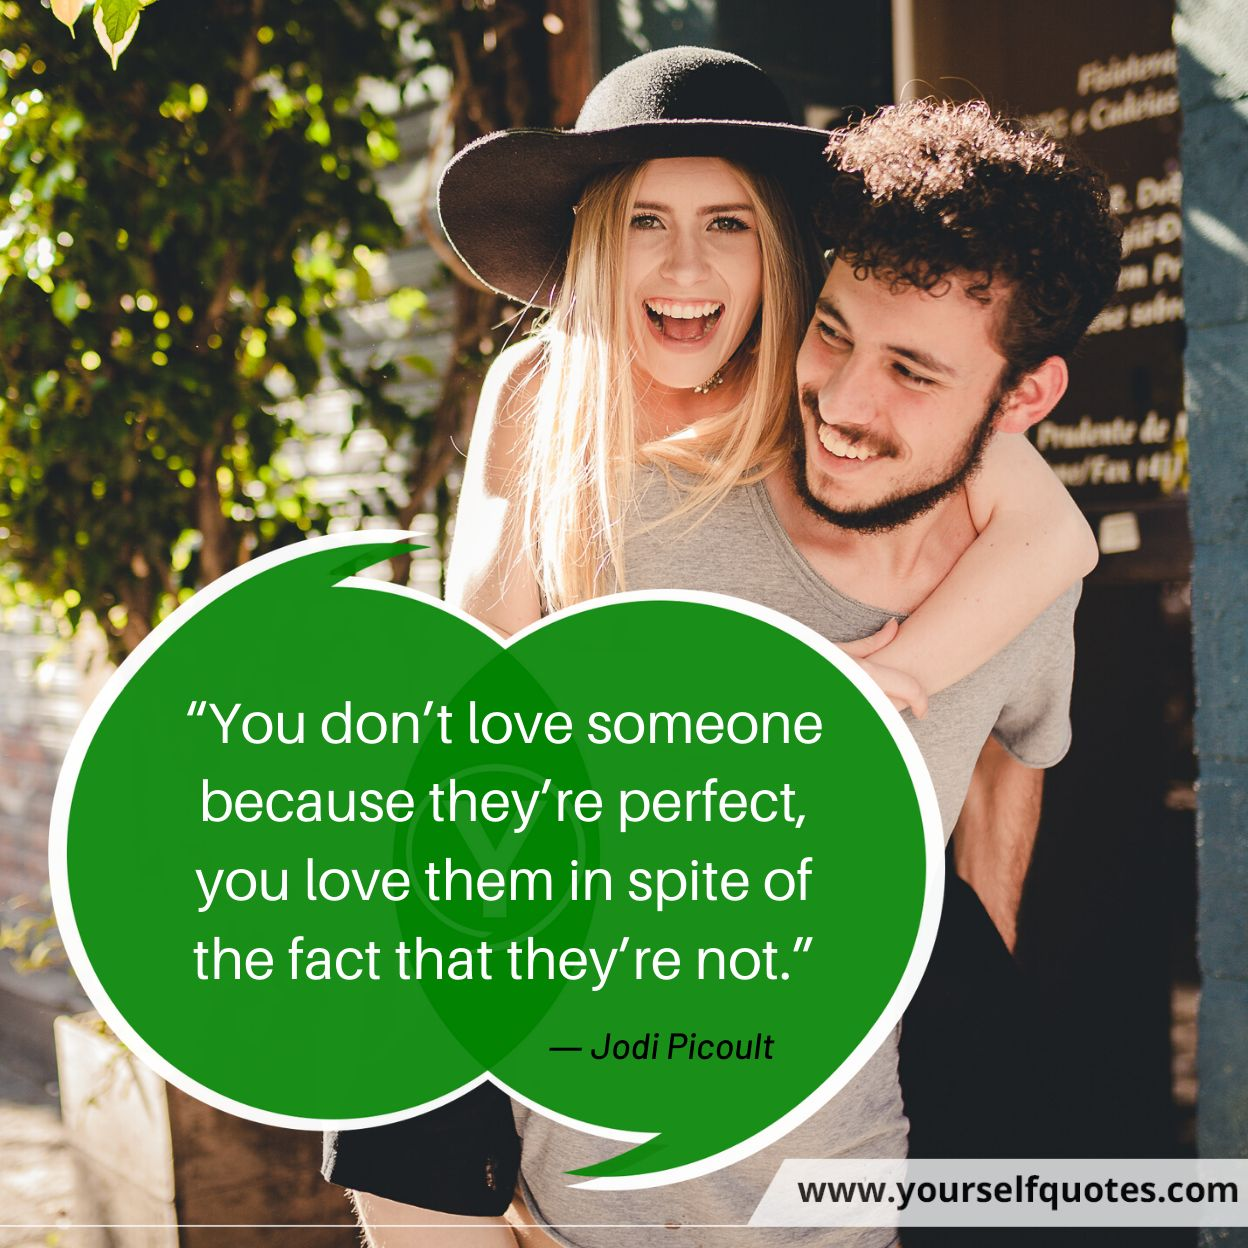 Quotes on Love by Jodi Picoult